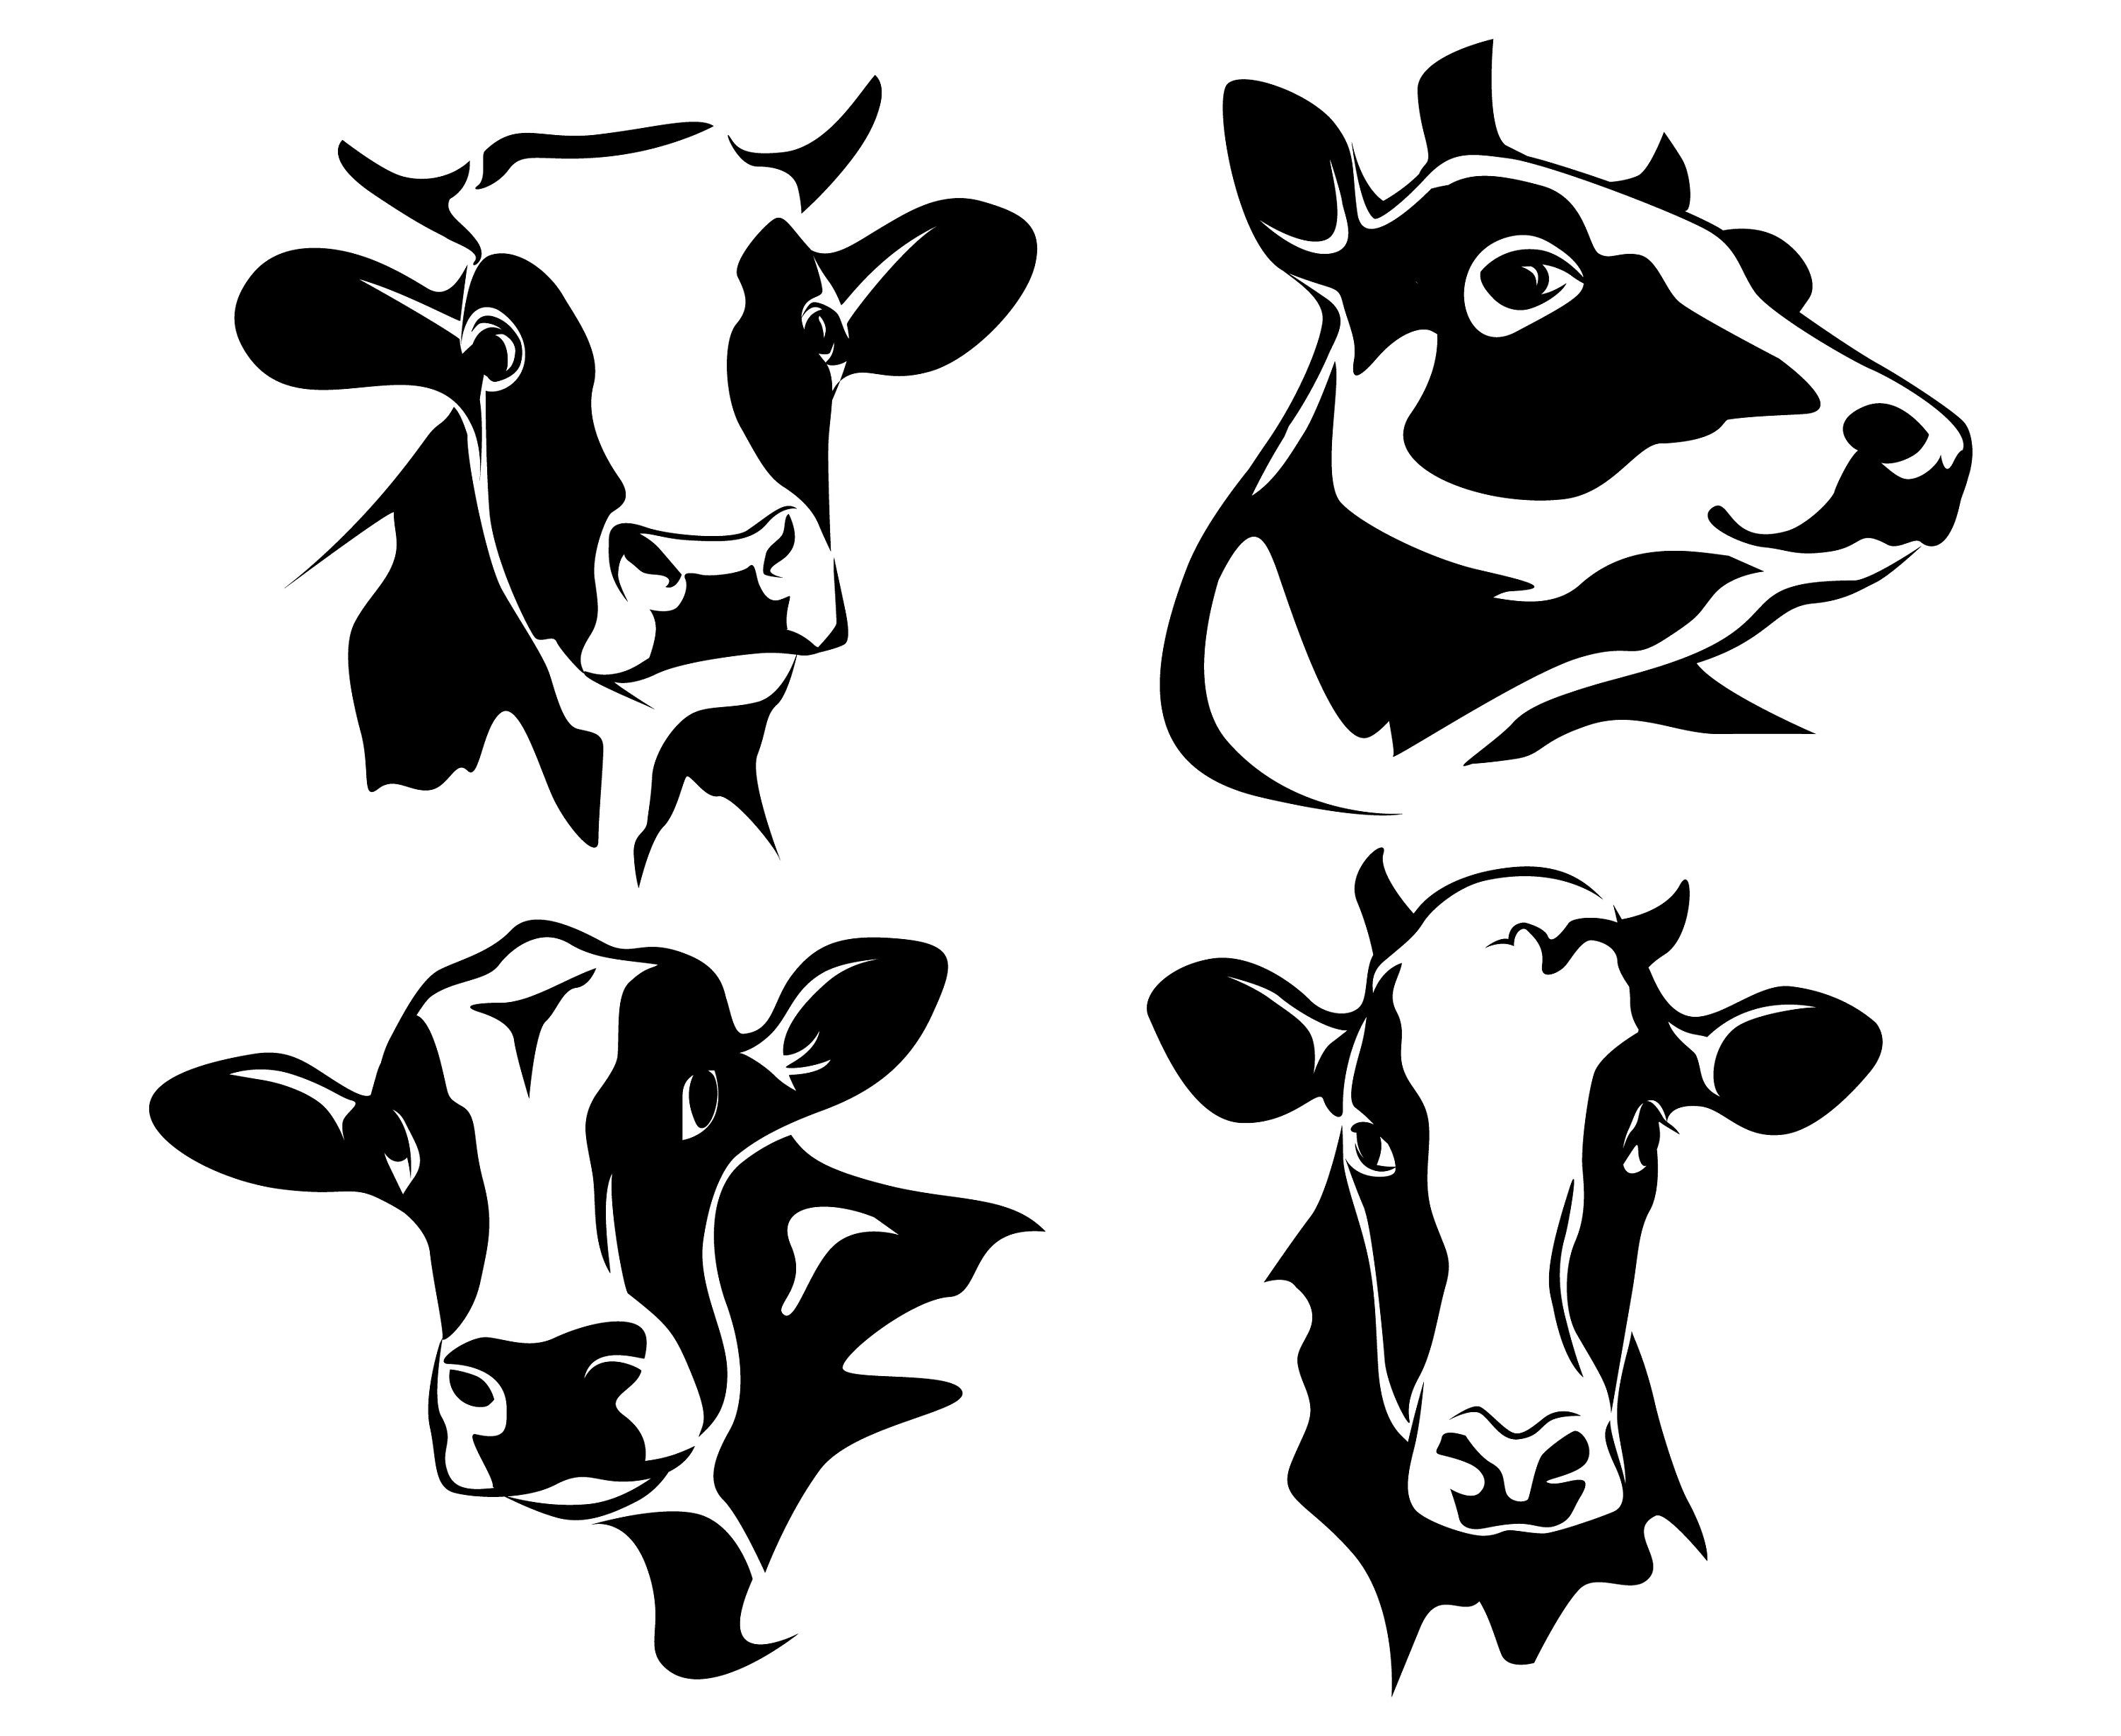 Cow Cow Head Dairy Cow Milk Cow Silhouette Svg Graphics Illustration Vector Logo Digital Clipart By Ctocopok On Cow Illustration Cow Logo Animal Silhouette